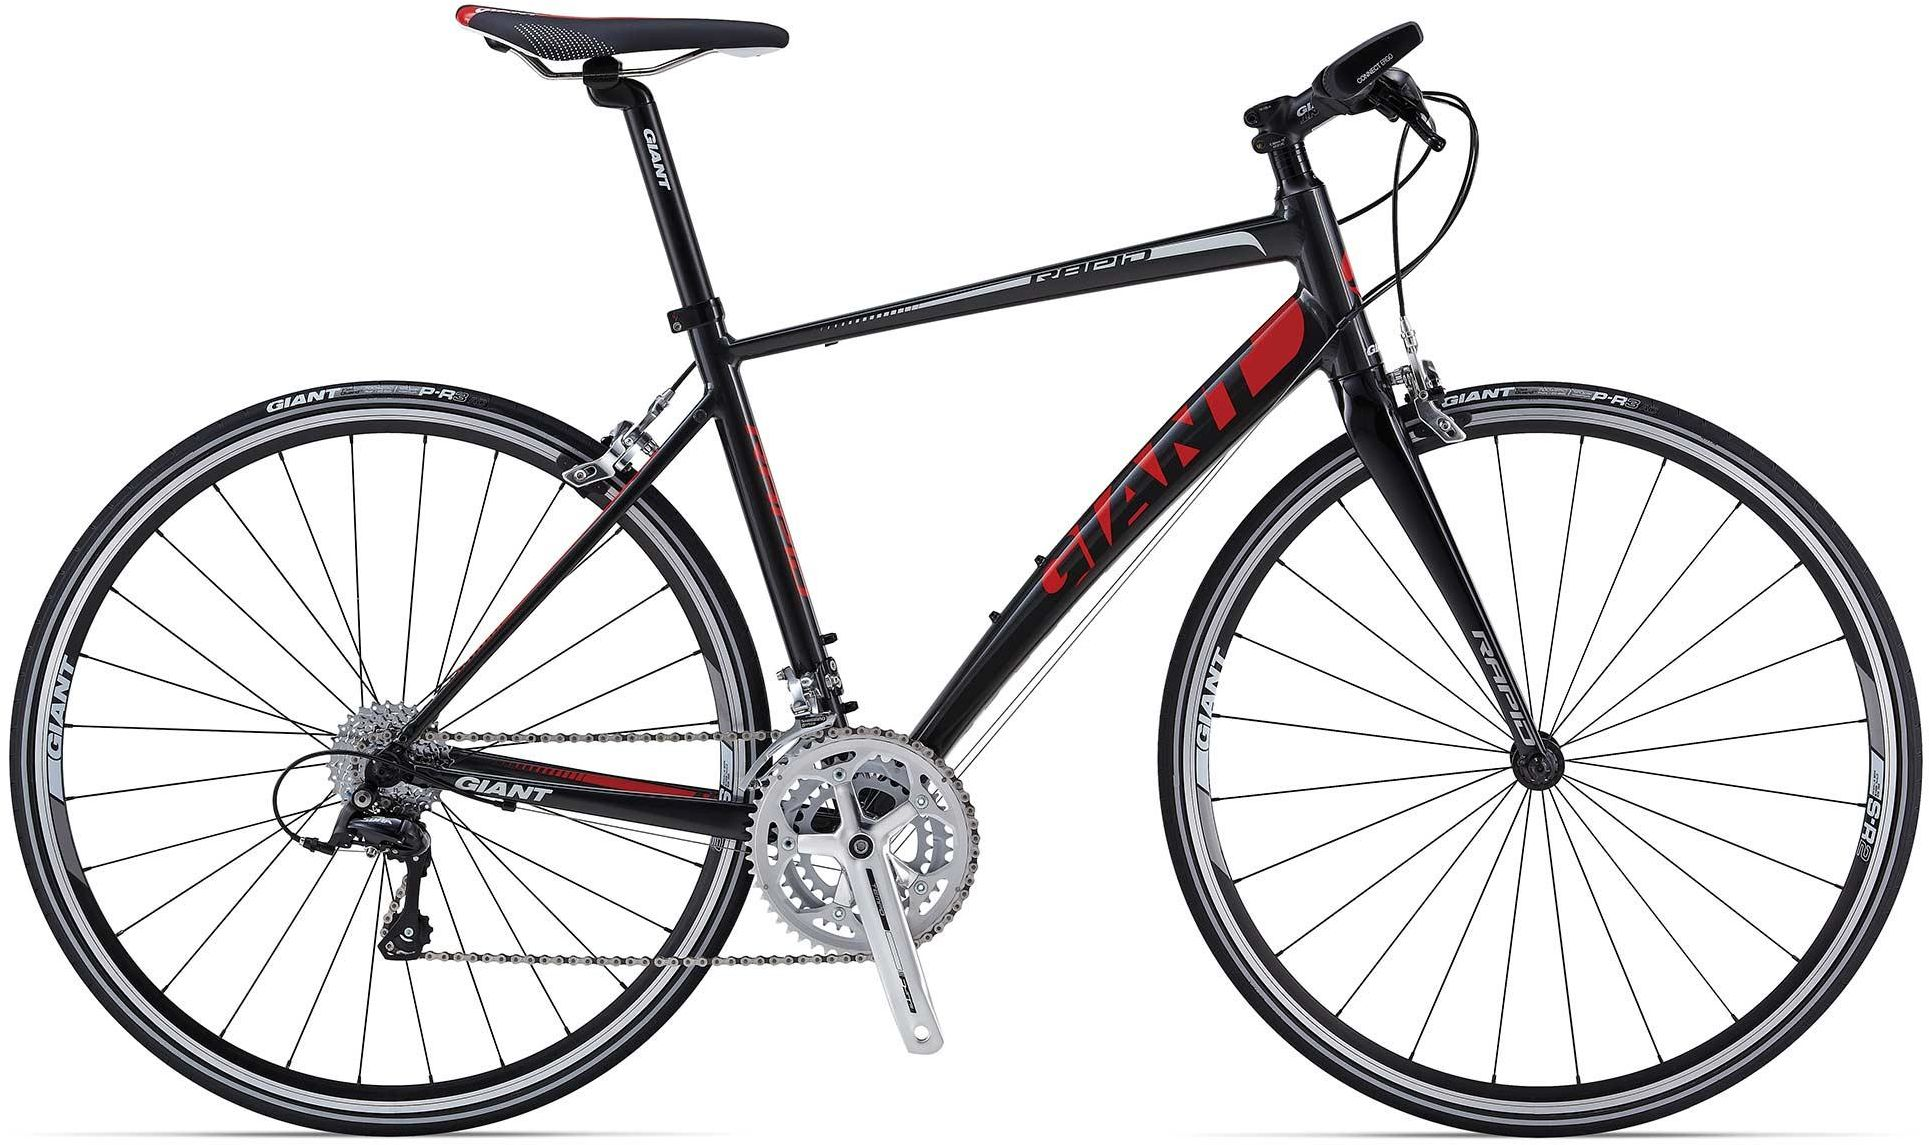 Giant Rapid 3 2015 review - The Bike List